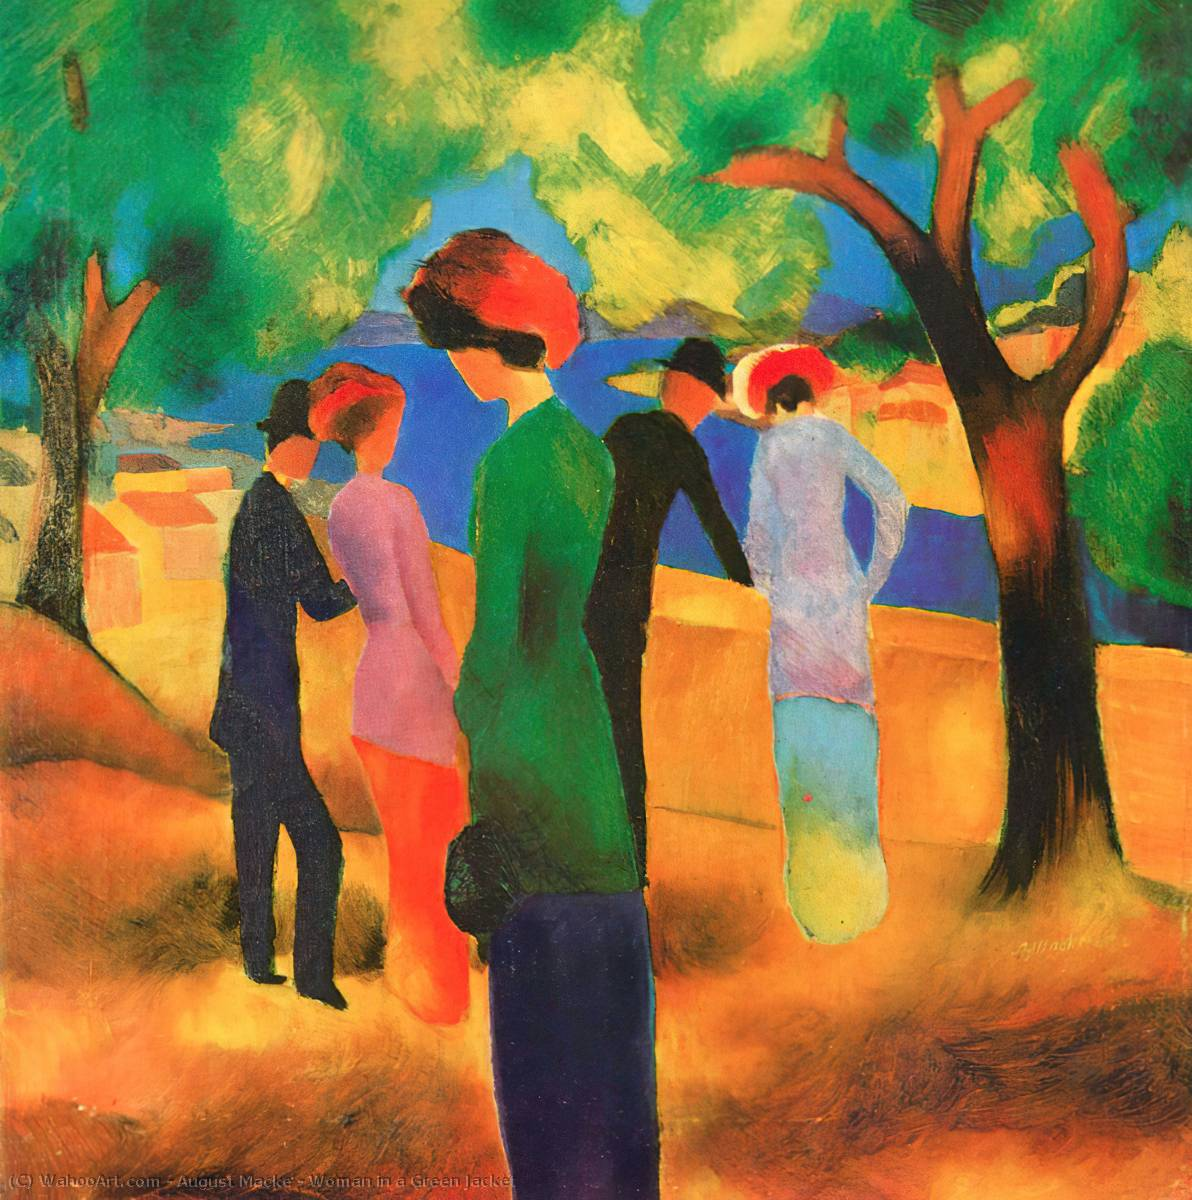 famous painting Woman in a Green Jacket of August Macke